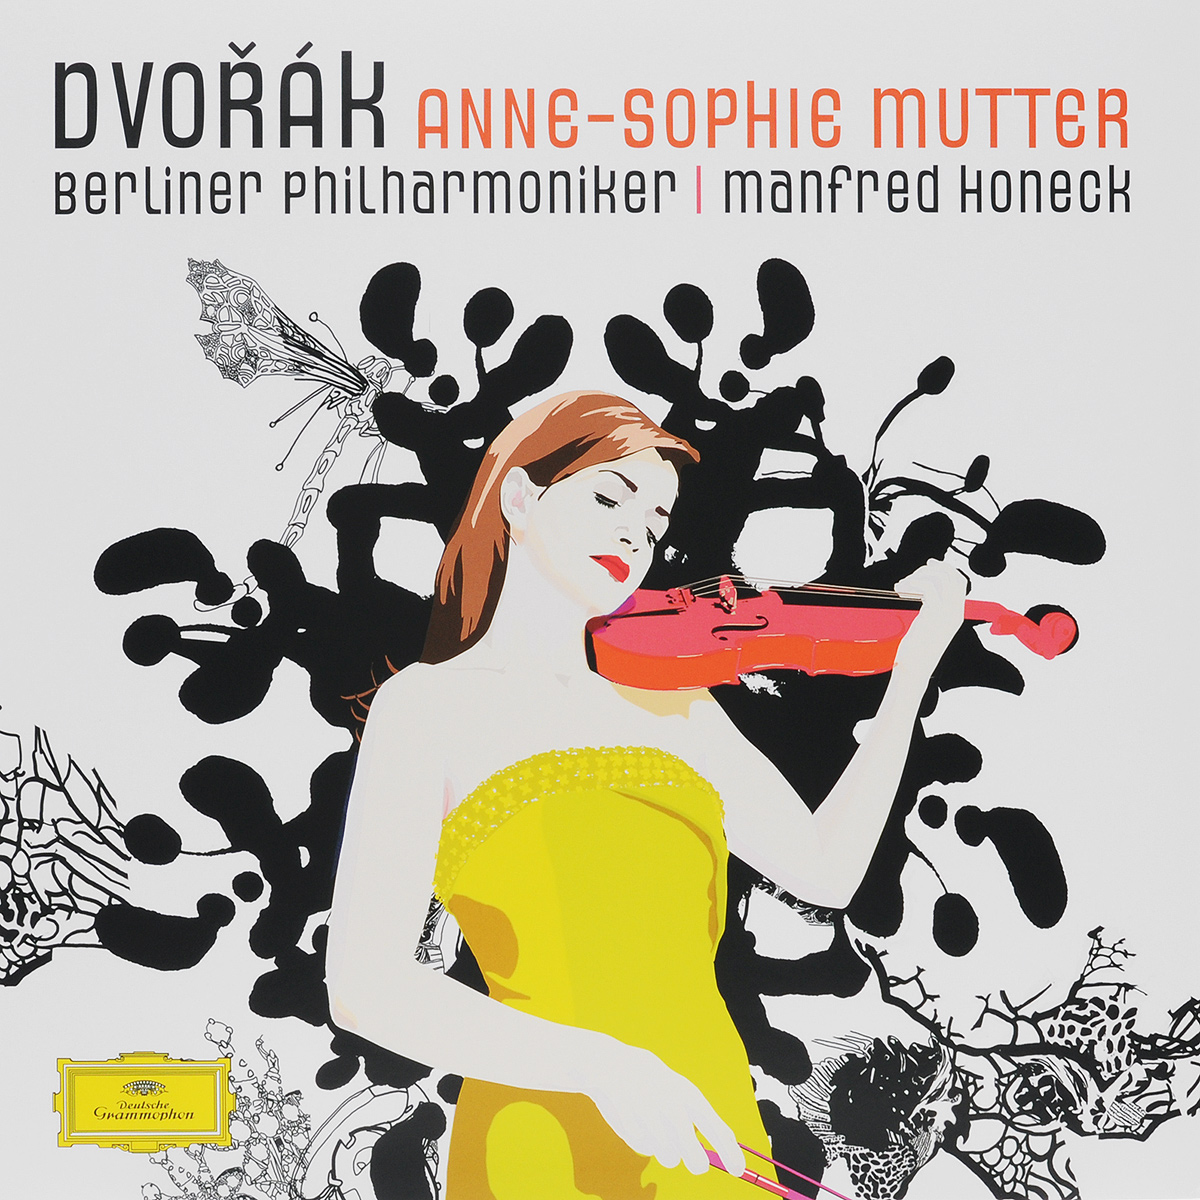 Анна-Софи Муттер,Berliner Philharmoniker,Манфред Хонек Dvorak / Anne-Sophie Mutter / Berliner Philharmoniker / Manfred Honeck (LP) анна софи муттер ламберт оркис anne sophie mutter lambert orkis beethoven die violinsonaten 4 cd